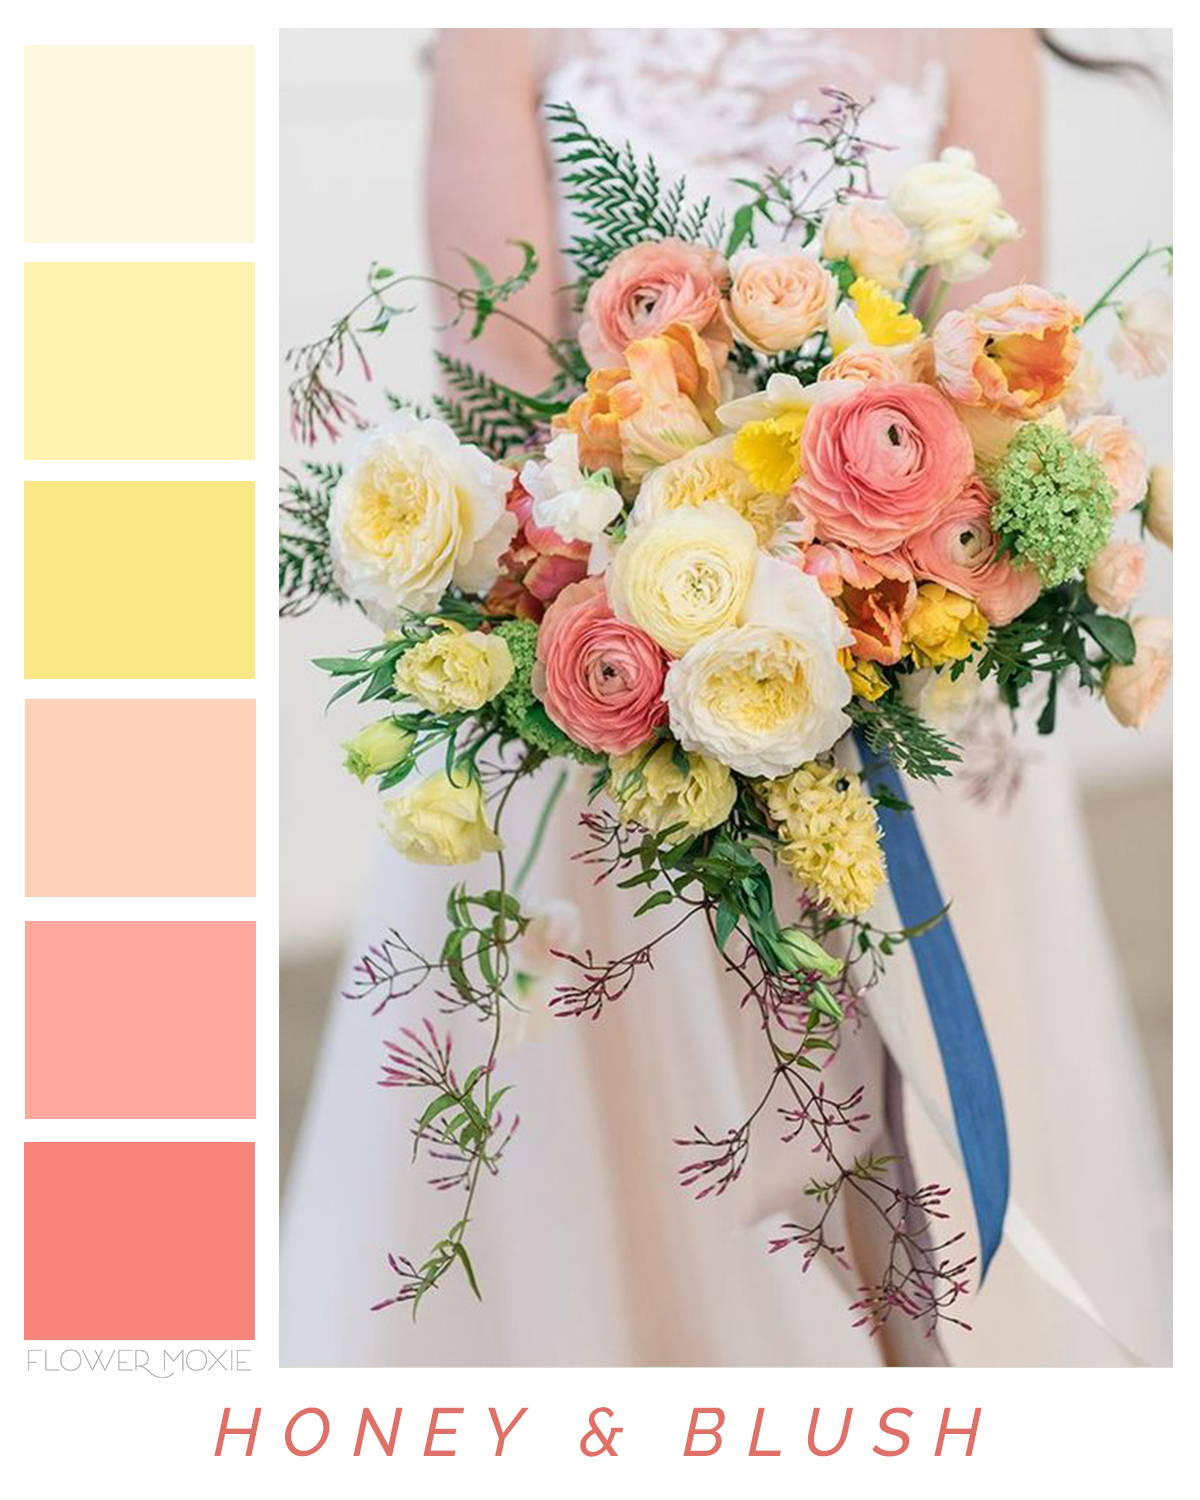 Honey and Blush Flower Bouquet